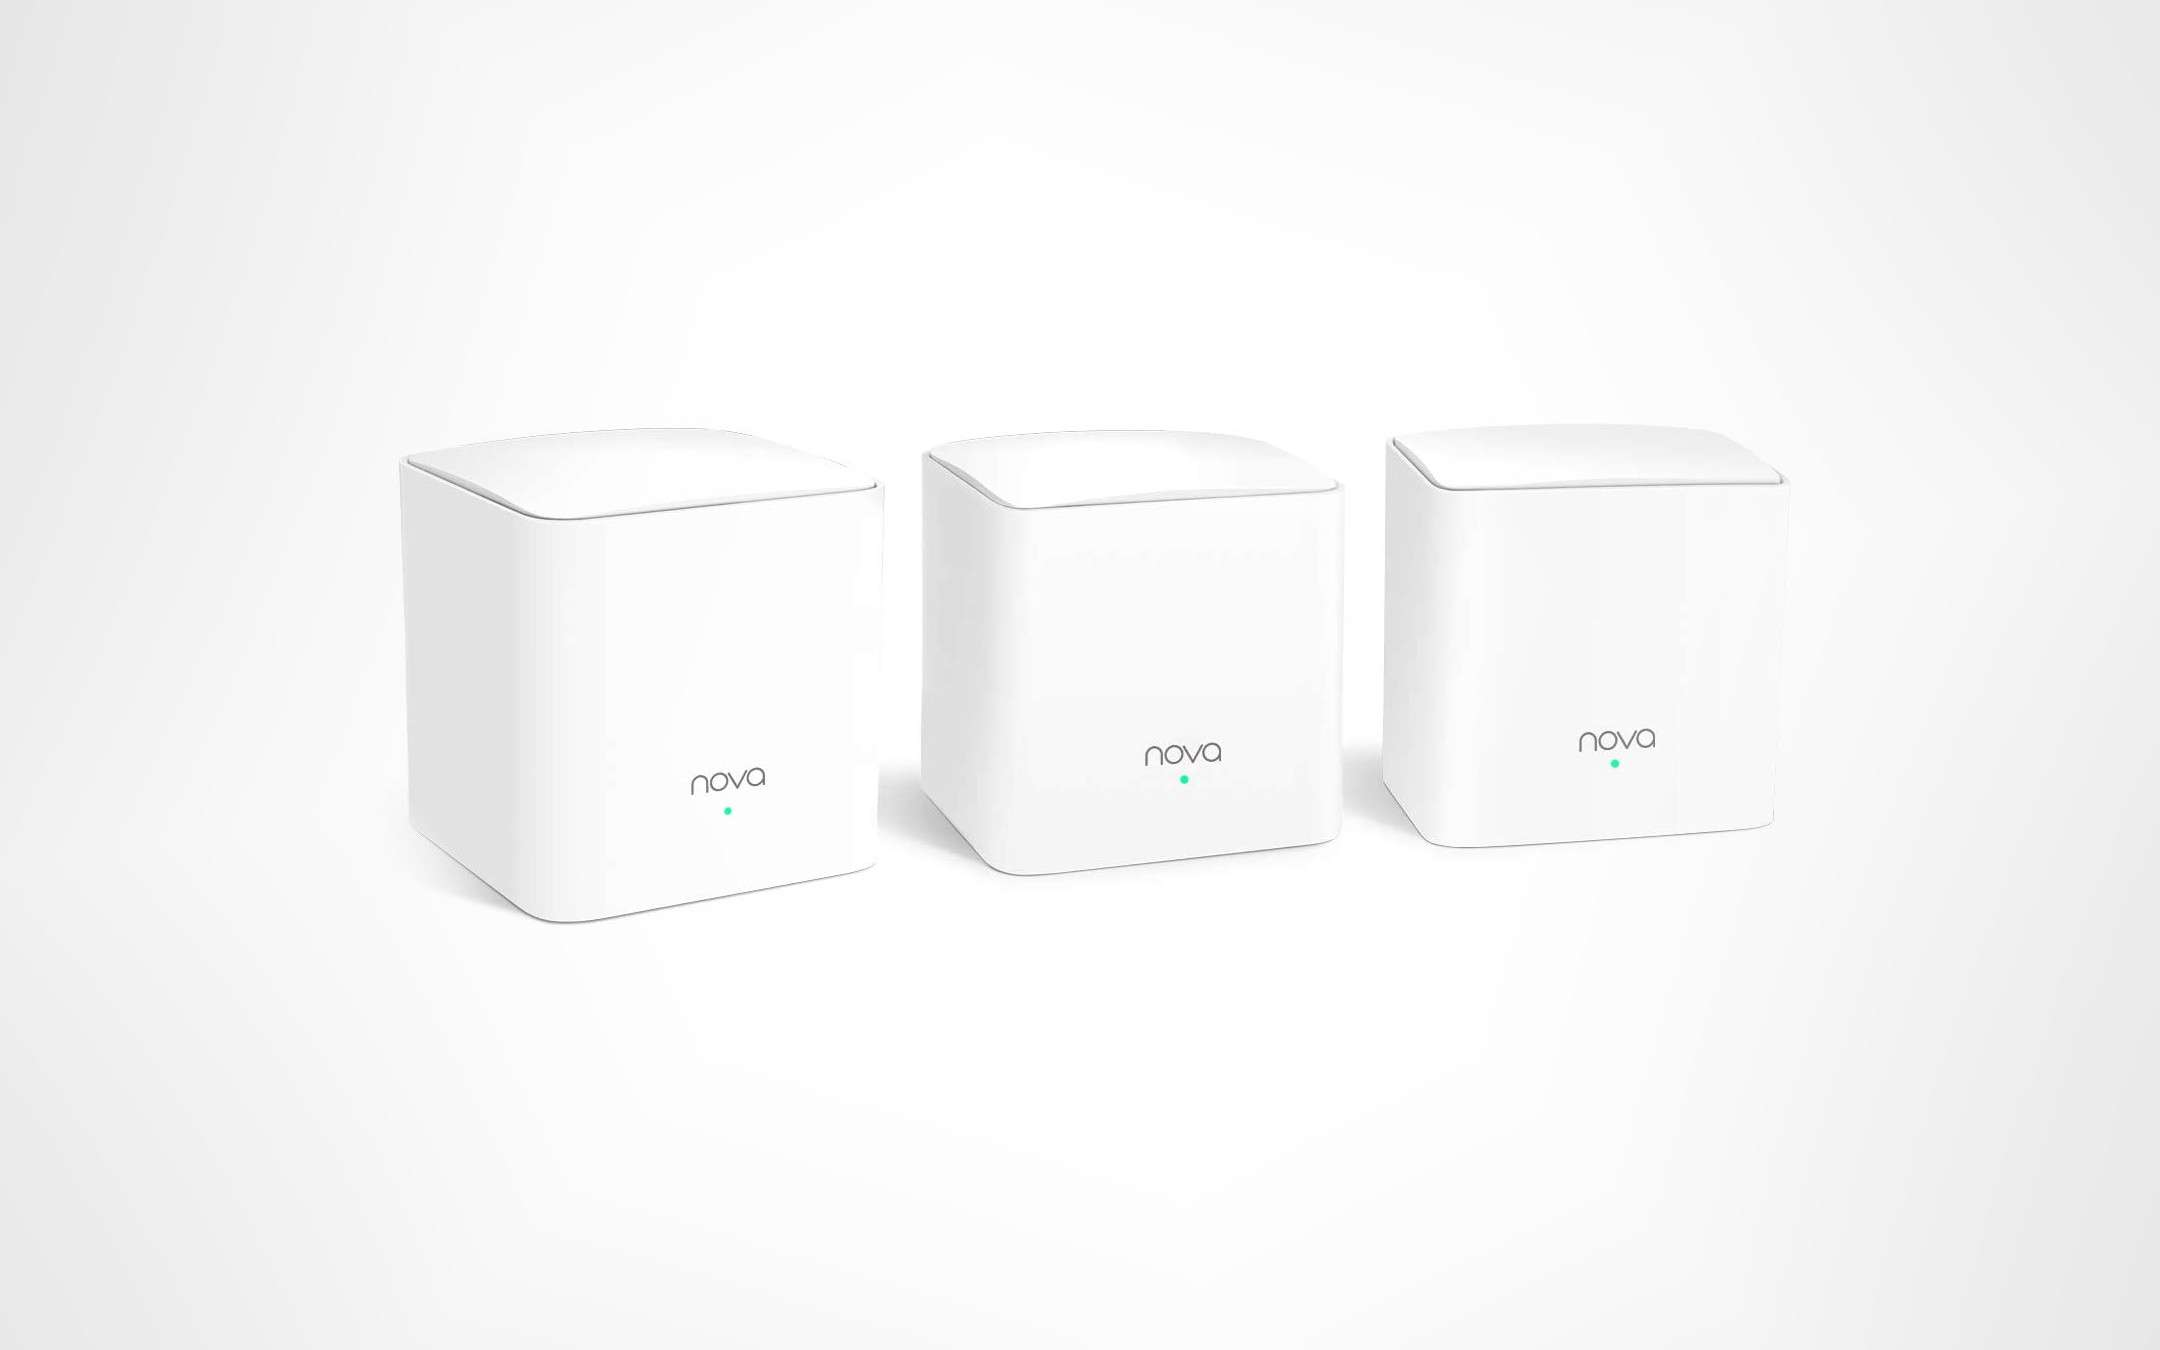 Nova: the Wifi network is mesh and on sale